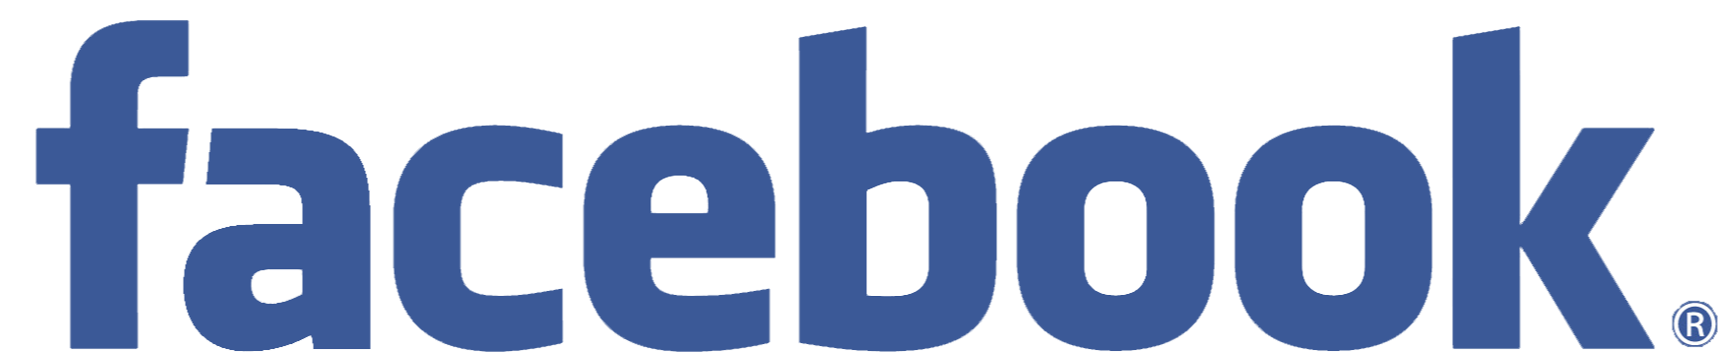 Facebook-Advertising-Agency-Campaign-Management